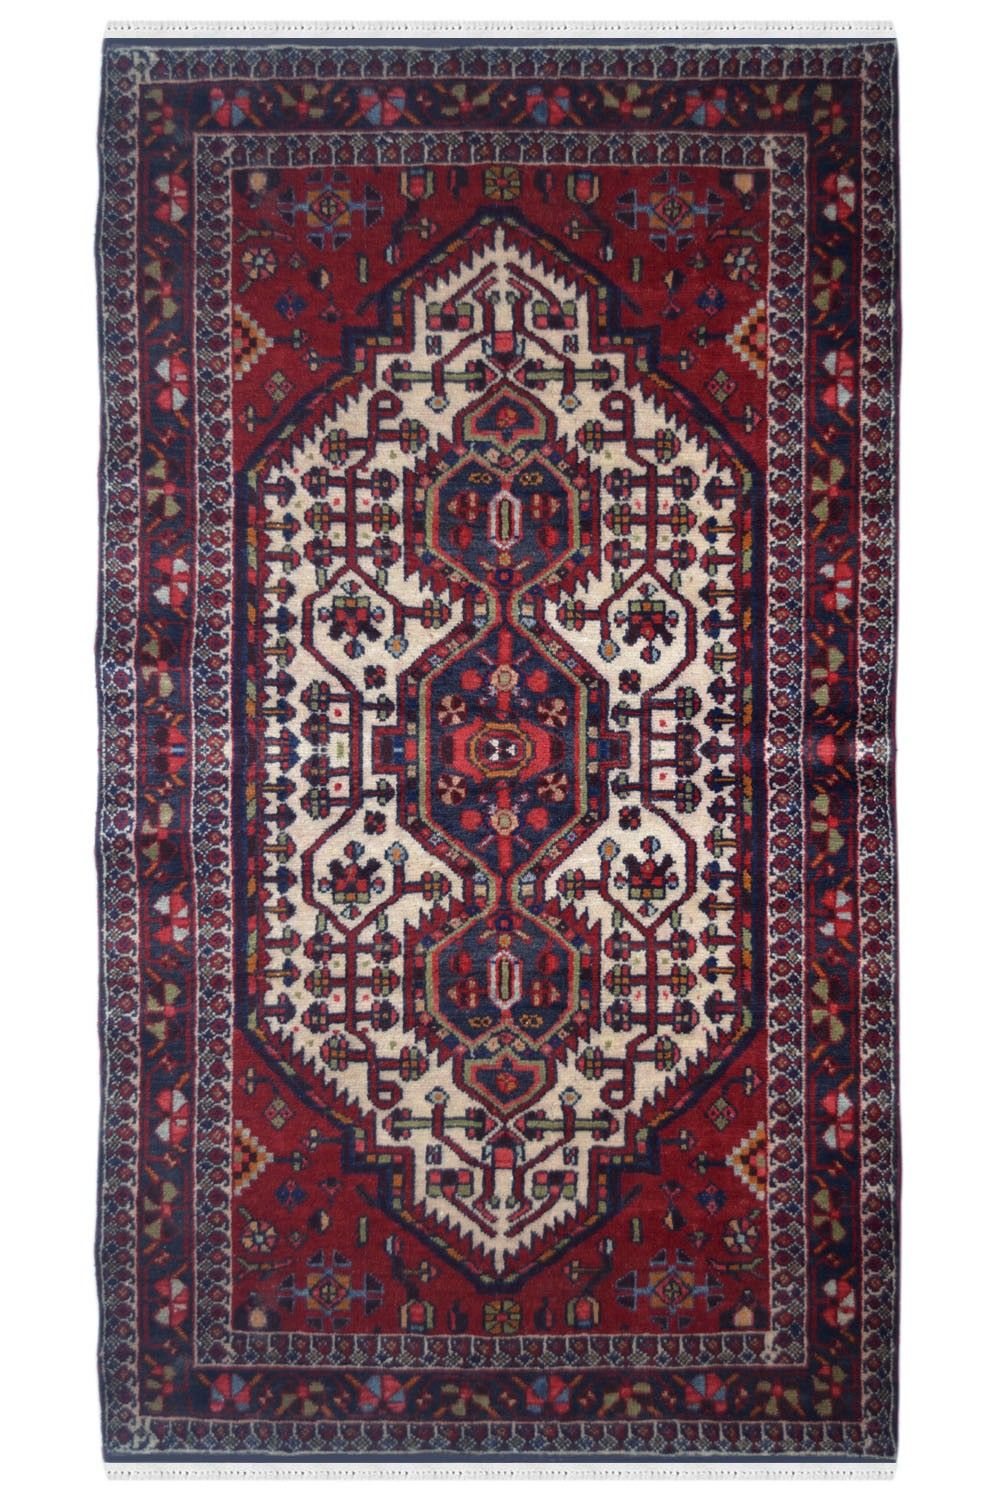 Antique maroon rug with bold motifs and bright colors